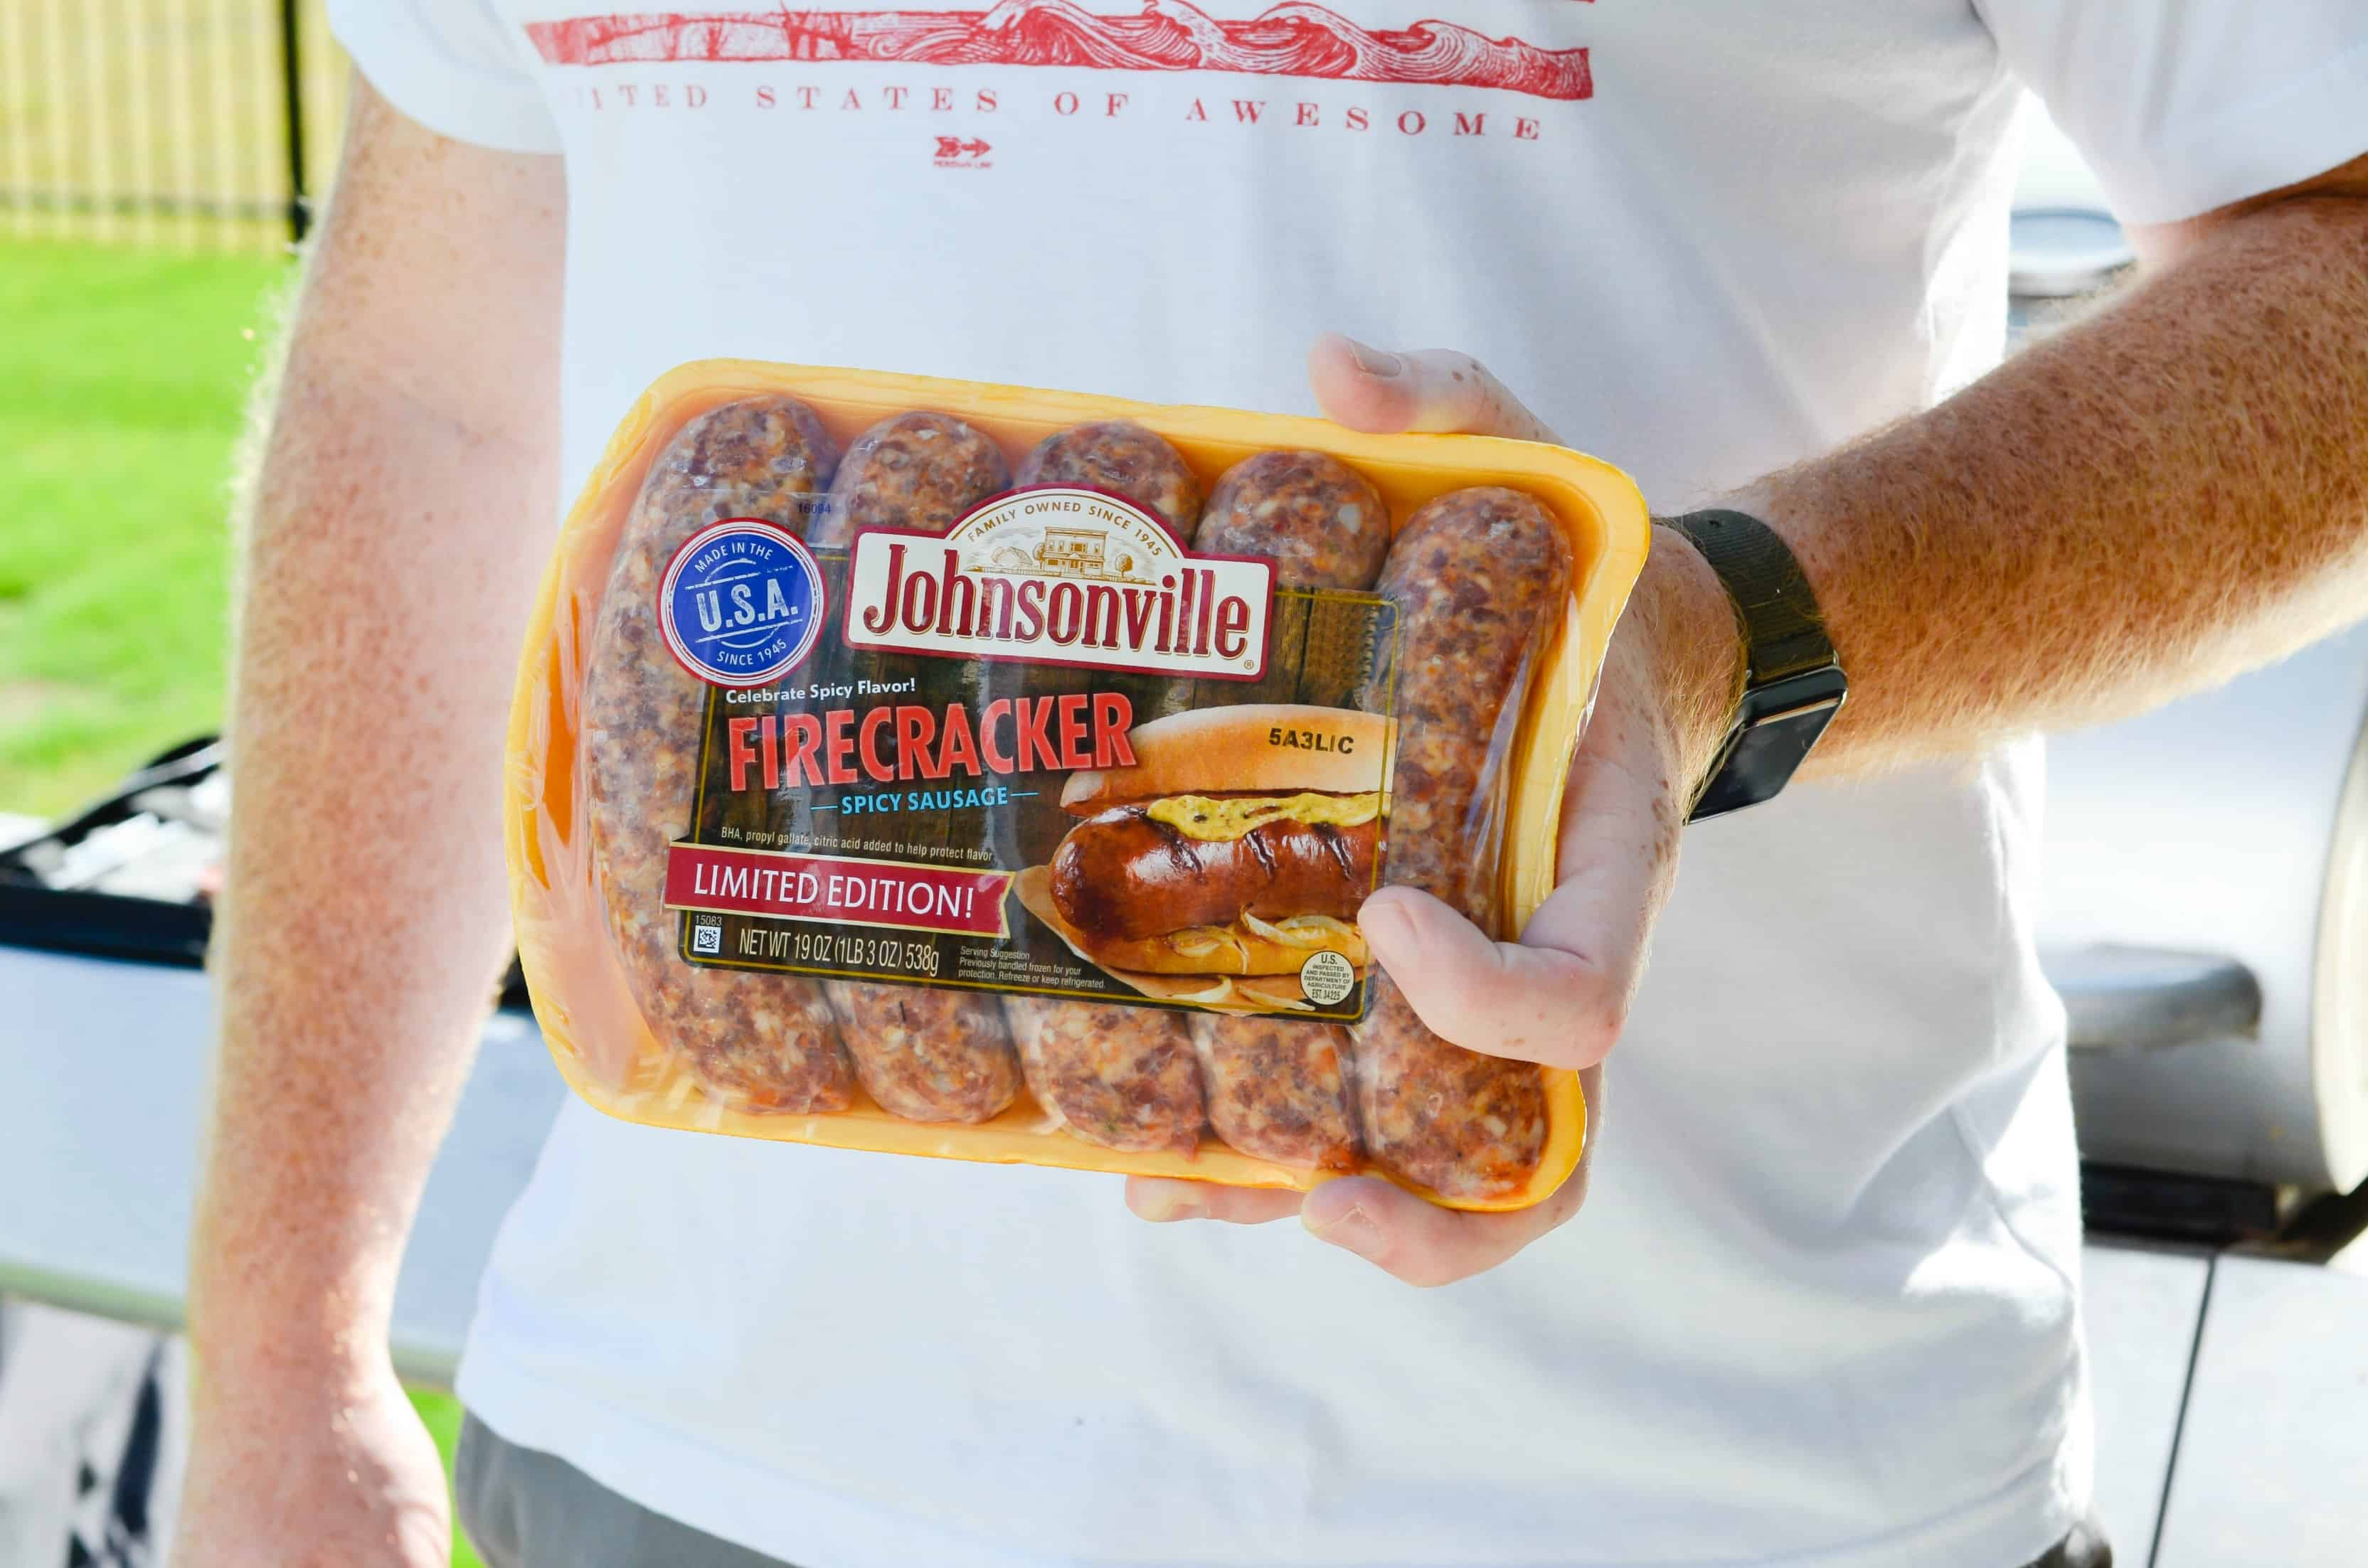 For the 4th of July we'll be grilling Johnsonville Firecracker Brats, jumping in the pool, and playing cornhole!